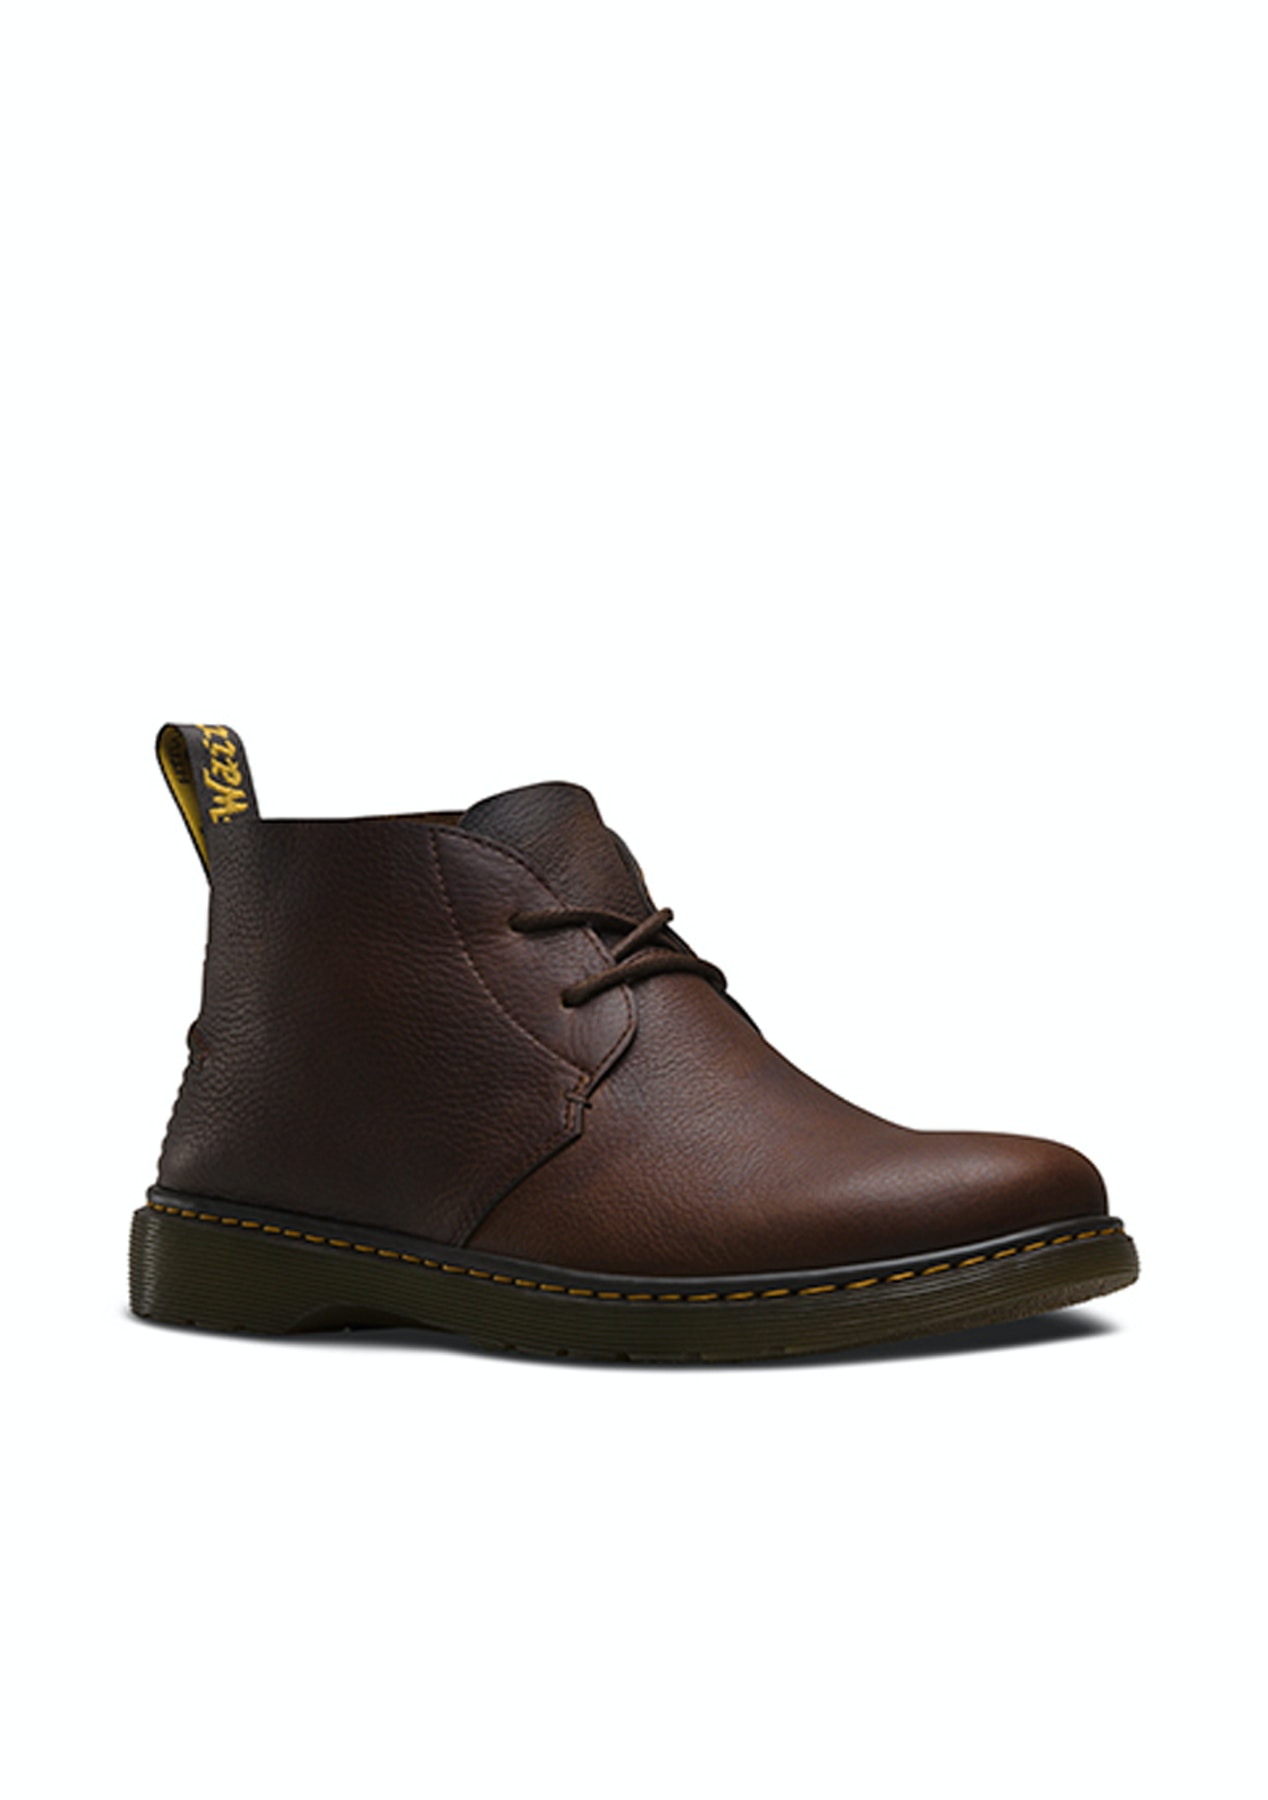 Dr Martens - Ember Grizzly - Under  150 Women s Shoes Sale - Onceit f1dba87db0